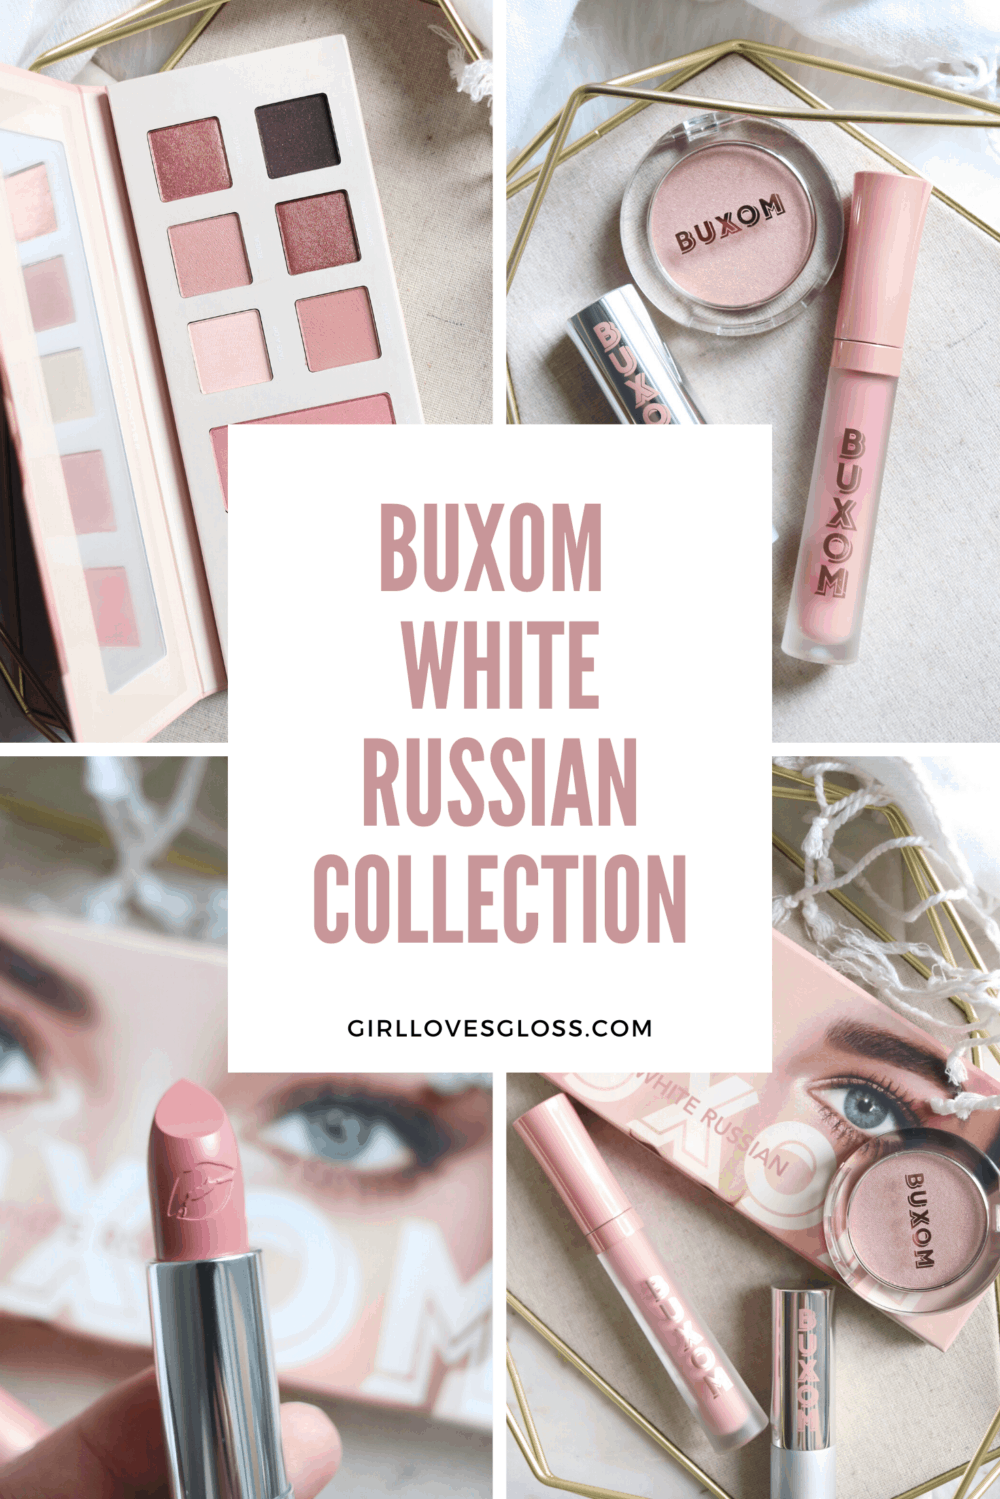 Buxom White Russian Collection Review and Swatches